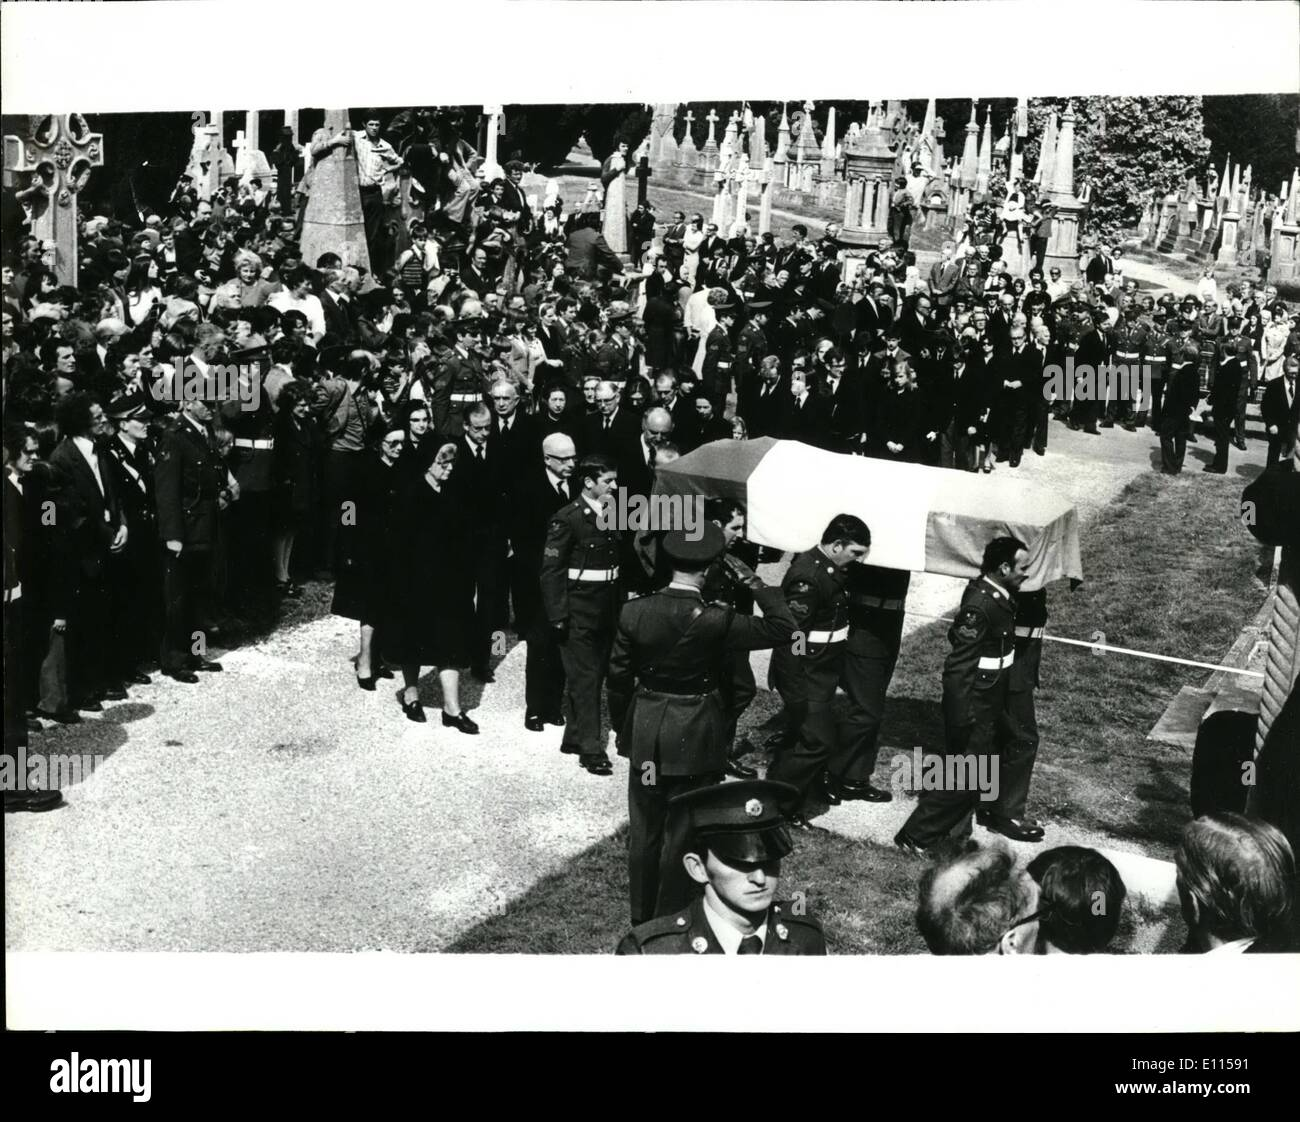 Sep. 04, 1975 - September 4th, 1975 The funeral of Eamon De Valera former President of the Irish Republic. The funeral take the place in Dublin on Tuesday last of Mr. Eamon De Valera, the former Irish President who outlived a British death sentence almost 60 years ago for his part in the 1916 Dublin Easter uprising. he died last week at the age of 92. Photo Shows: Members of Eamon De Valera's family, and close relatives follow the Irish tri-colour covered coffin to the family grave at Glasnevin Cemetery, Dublin. - Stock Image